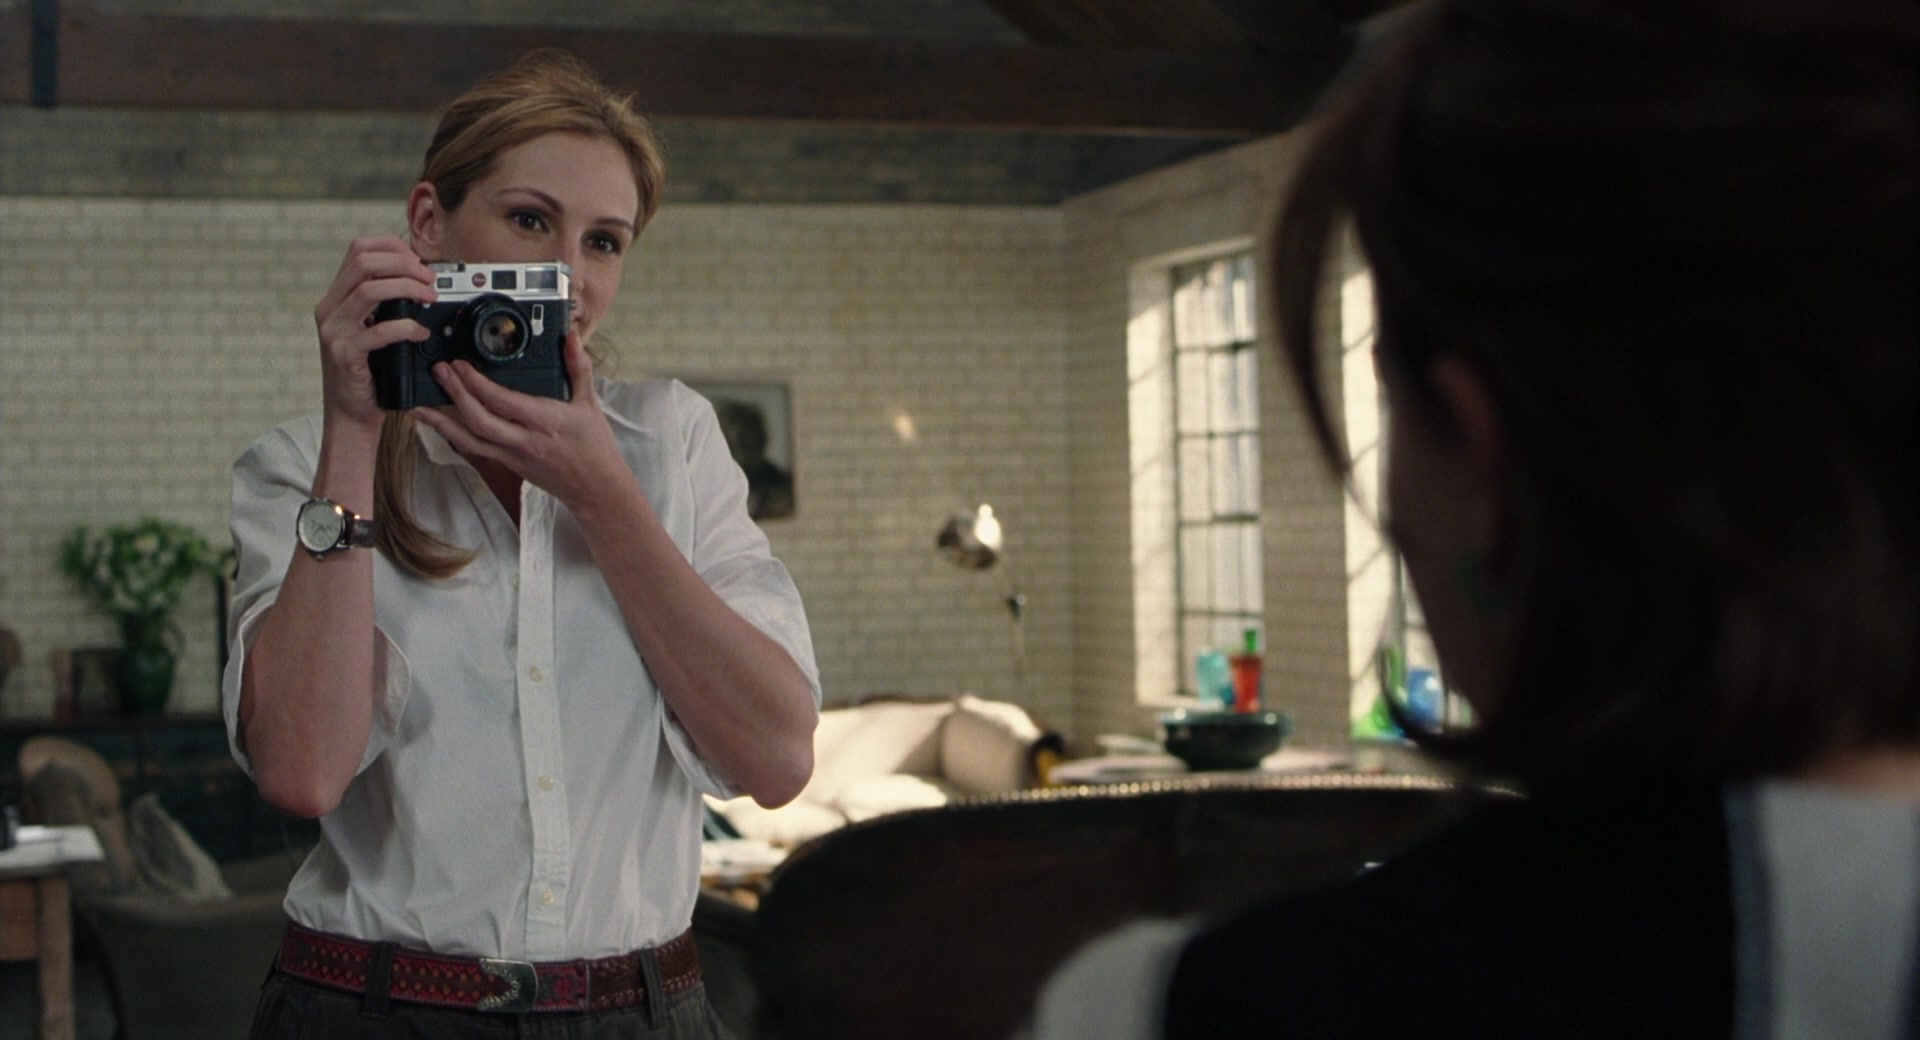 leica m6 camera used by julia roberts in closer 2004 movie